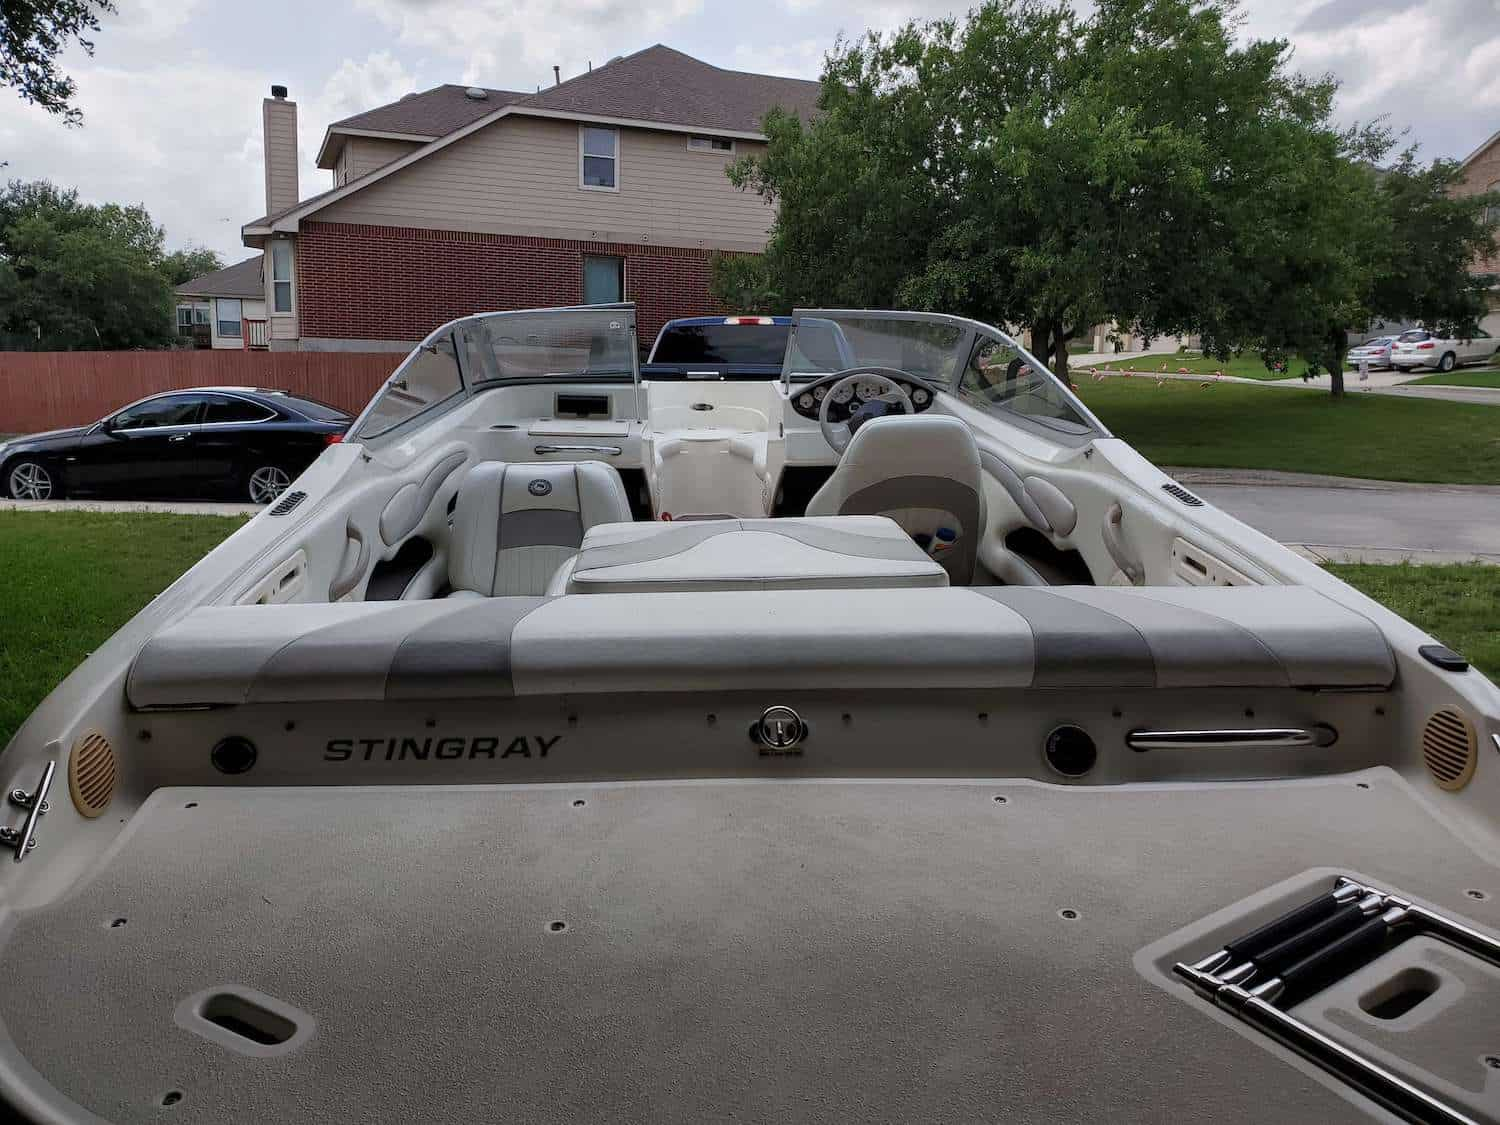 Stingray Owners Gallery - Boat parked